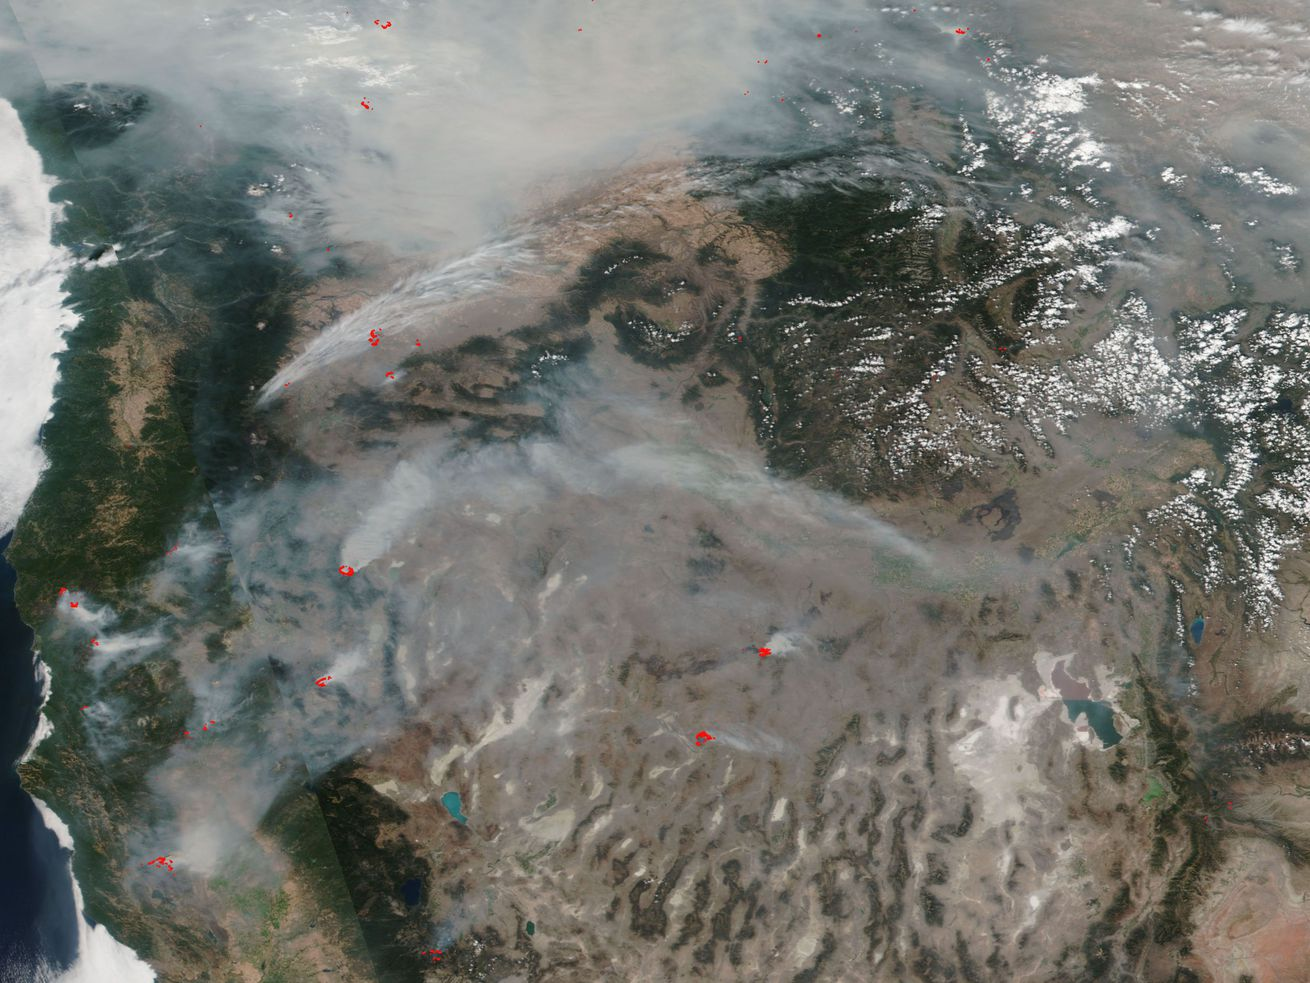 A satellite image of smoke from wildfires in the Pacific Northwest in August 2018, with active fires labeled in red.